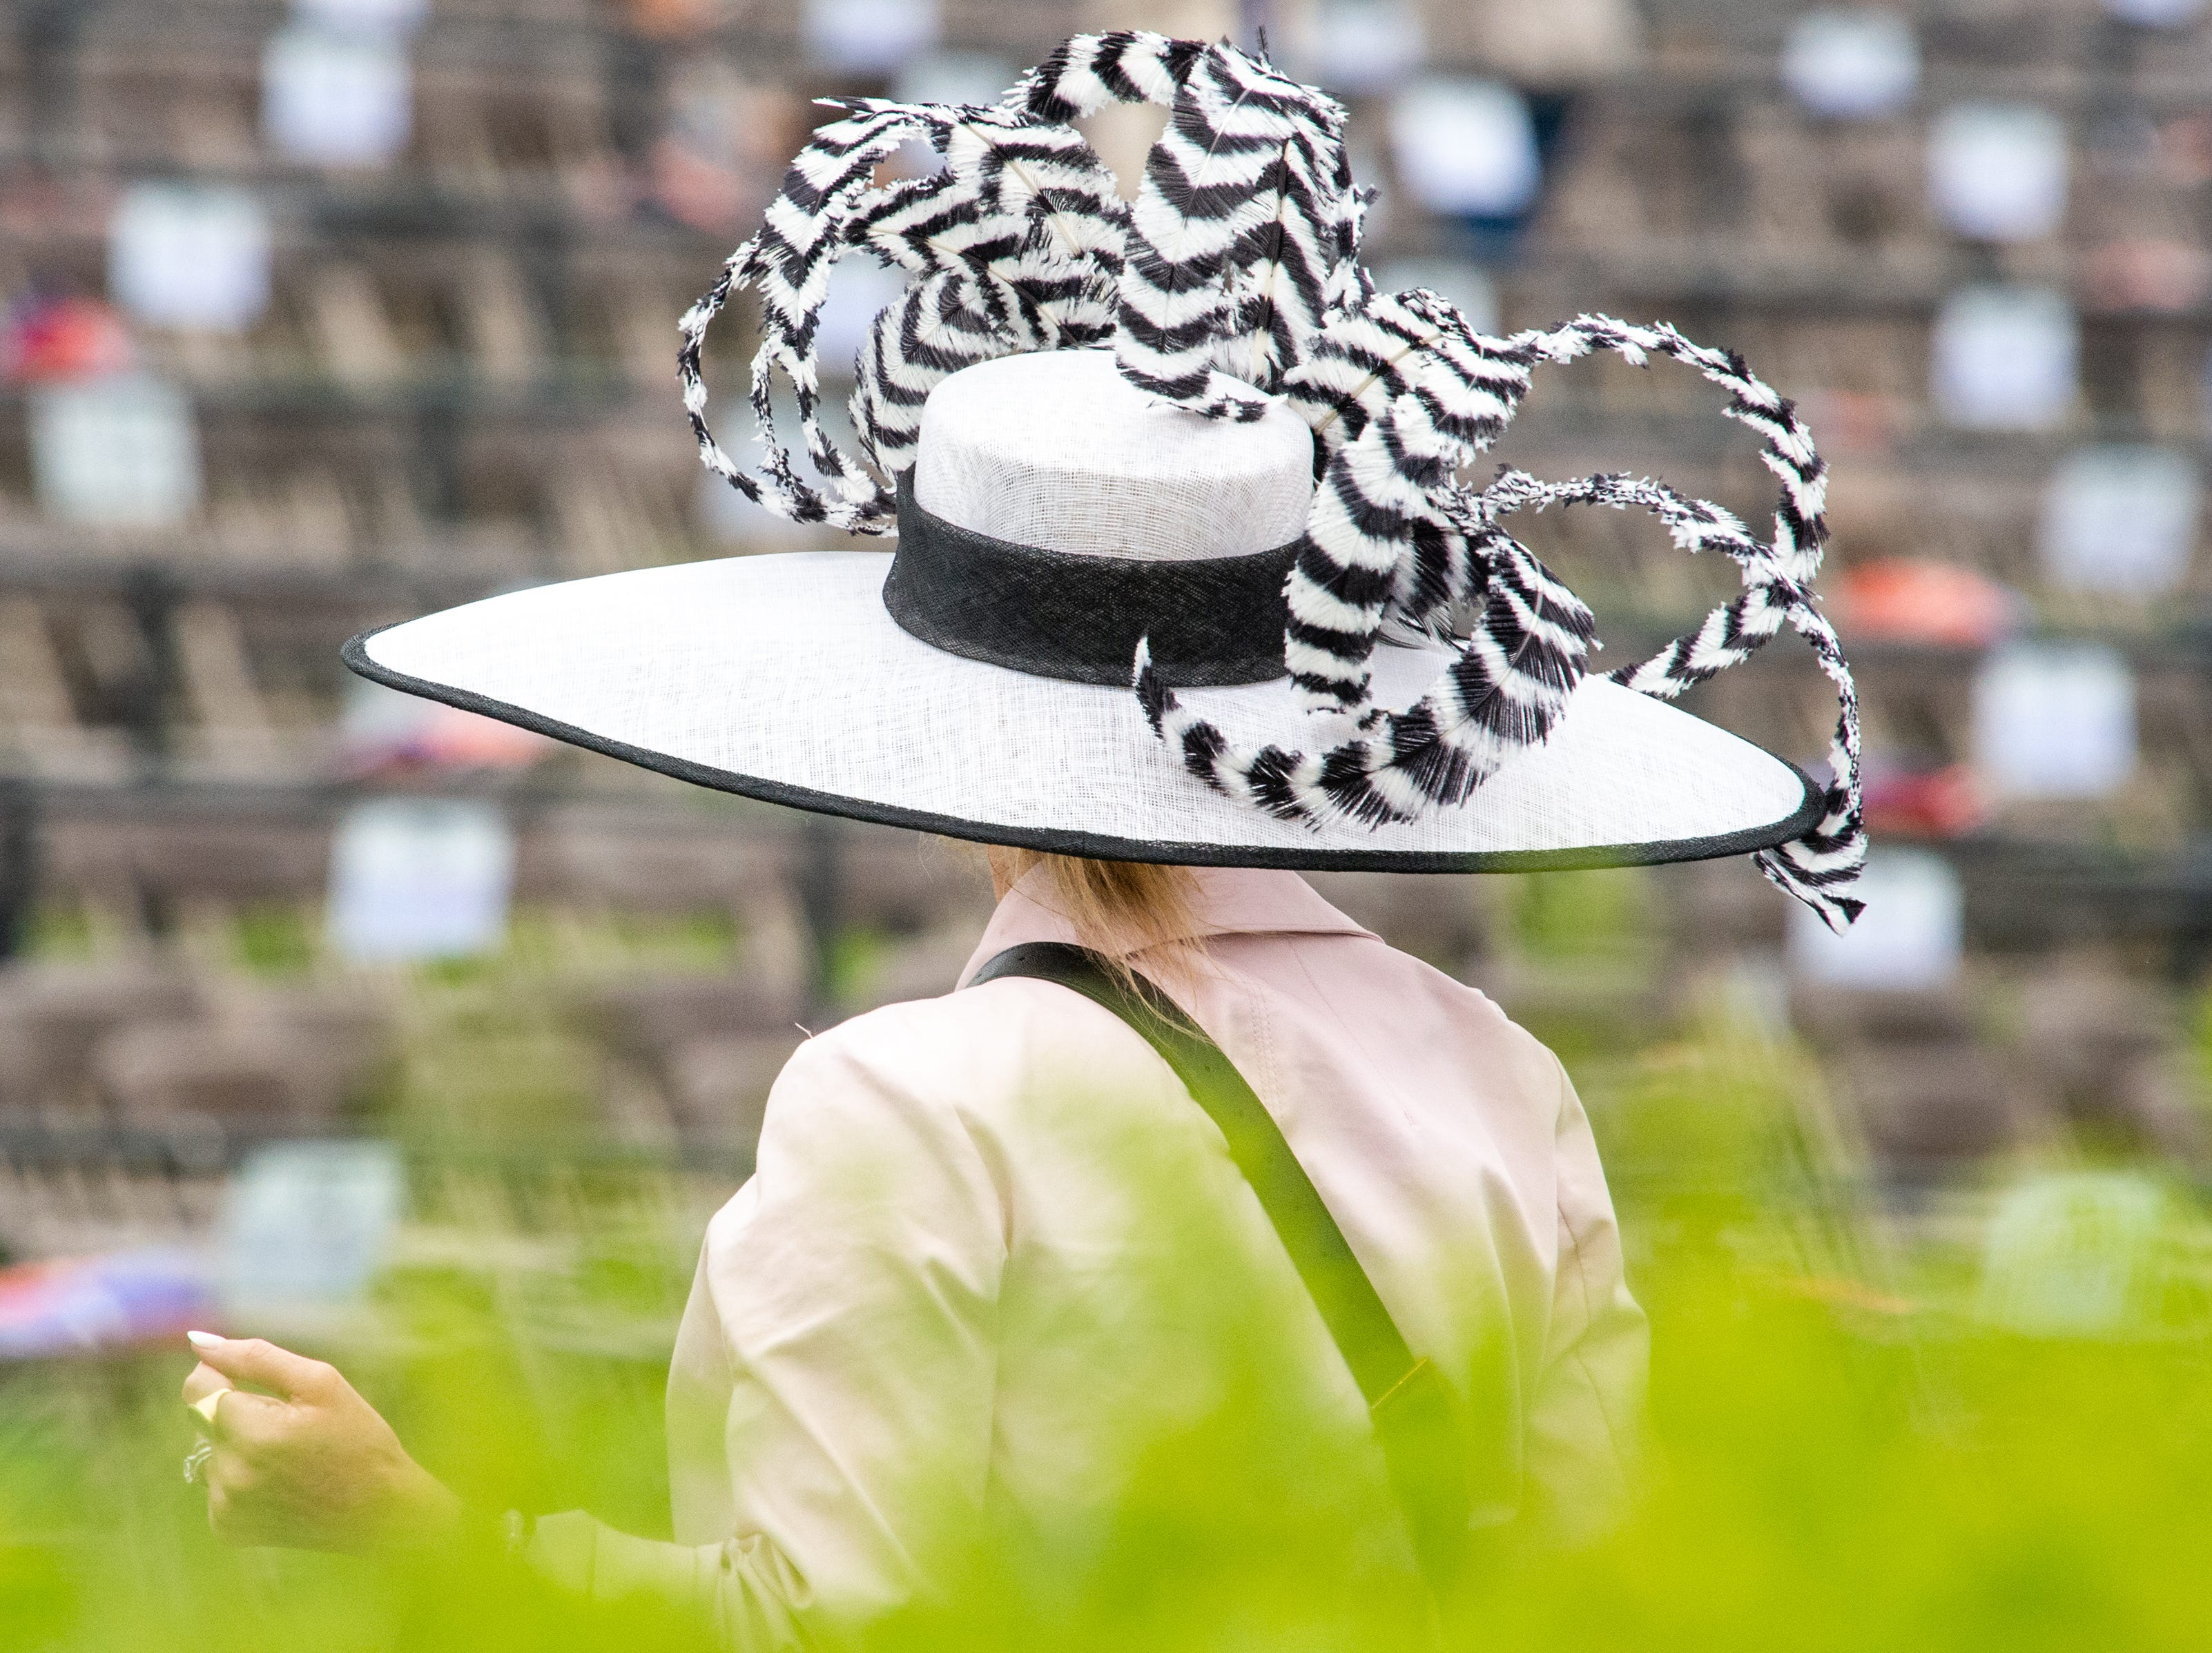 A fan walks across the track in a large hat during the Iroquois Steeplechase at Percy Warner Park Saturday, May 11, 2019, in Nashville, Tenn.